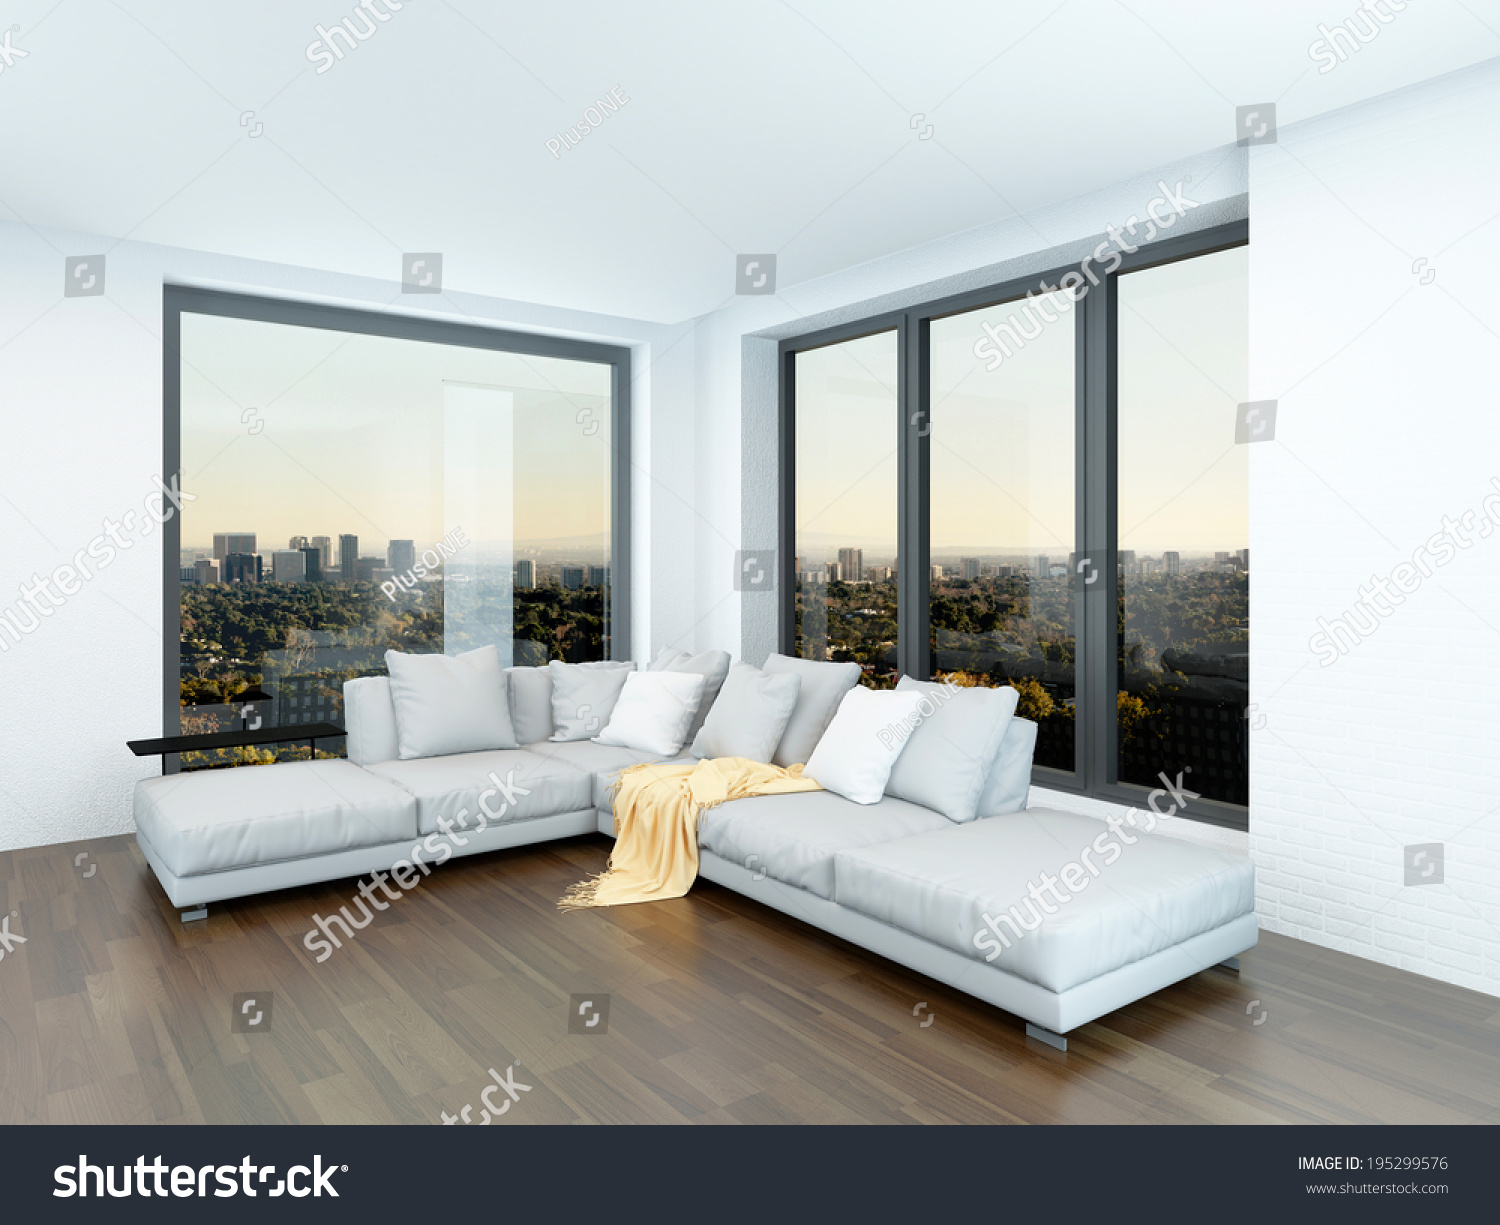 Modern Minimalist Sitting Room Interior With A Corner Unit In Front Of Two View Windows On